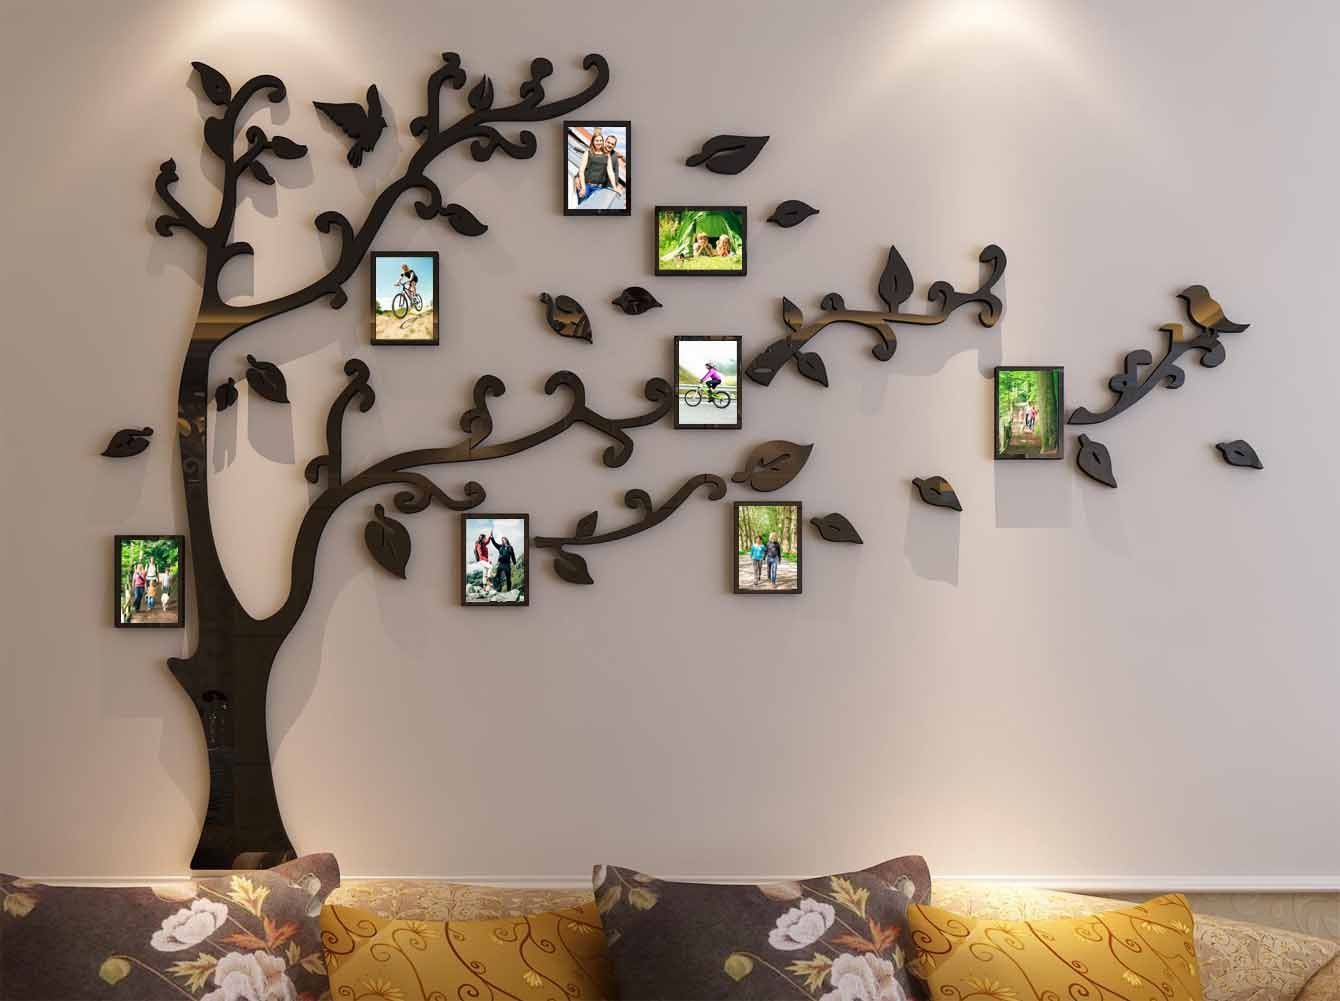 3d Picture Frames Tree Wall Murals For Living Room Bedroom Sofa Backdrop Tv Wall Background Originality Stickers Wall 3d Bilderrahmen Baum Wand Gerahmte Wand